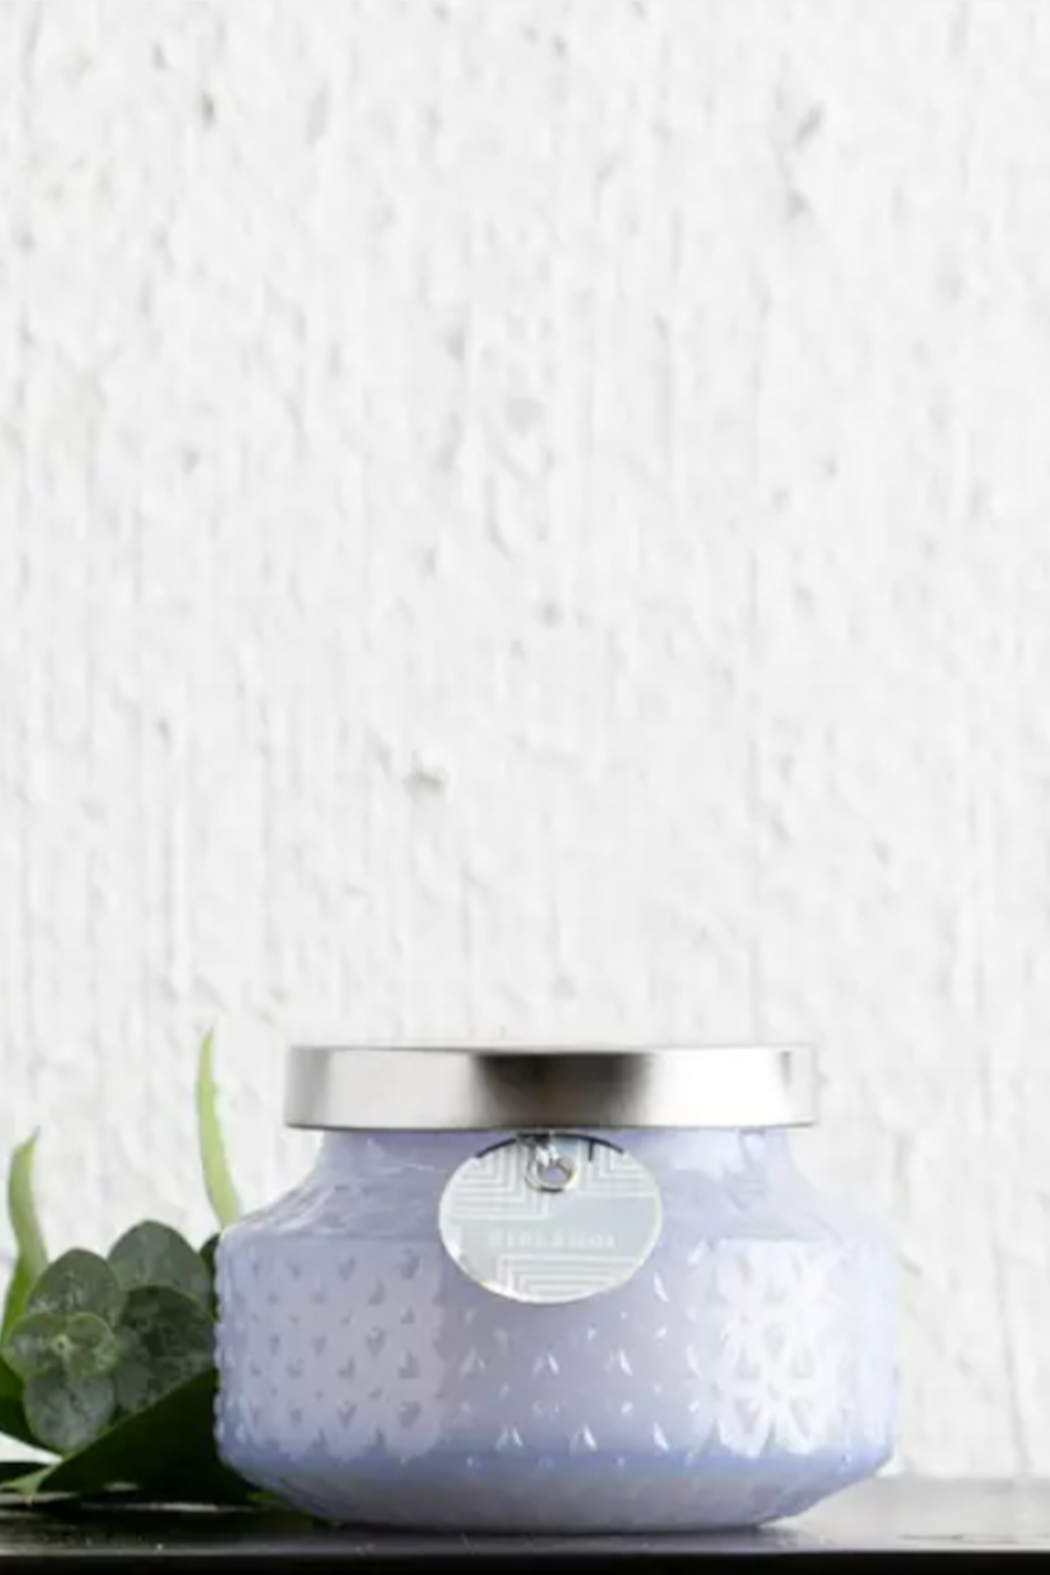 east west East West Scented Candle 3.5oz - Main Image